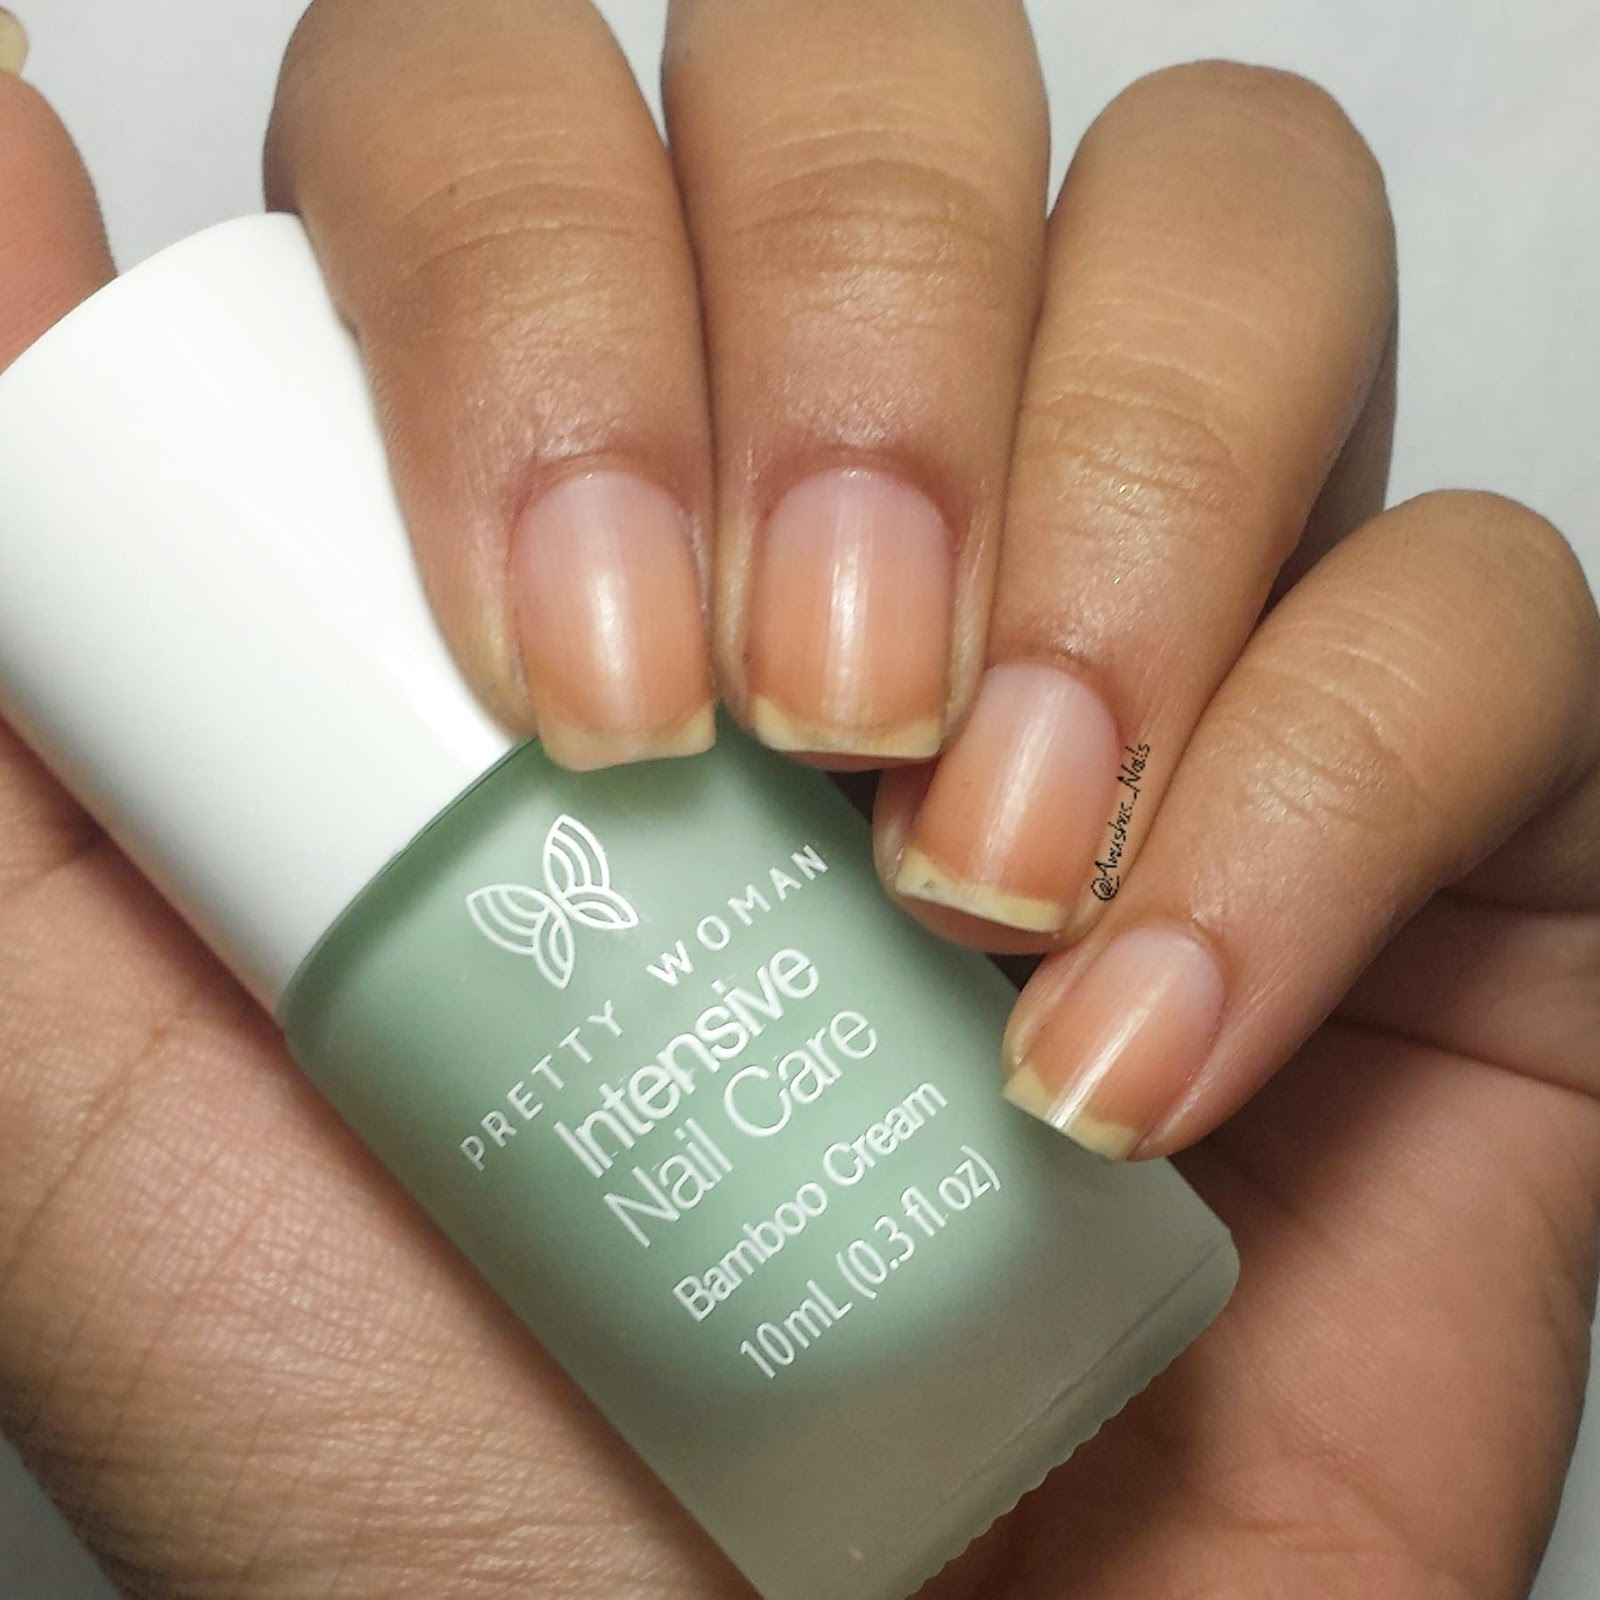 This Product Comes In A Traditional Nail Polish Bottle So You Can Brush It Onto Your Cuticles And Nails Then Just Need To Mage The Cream Into